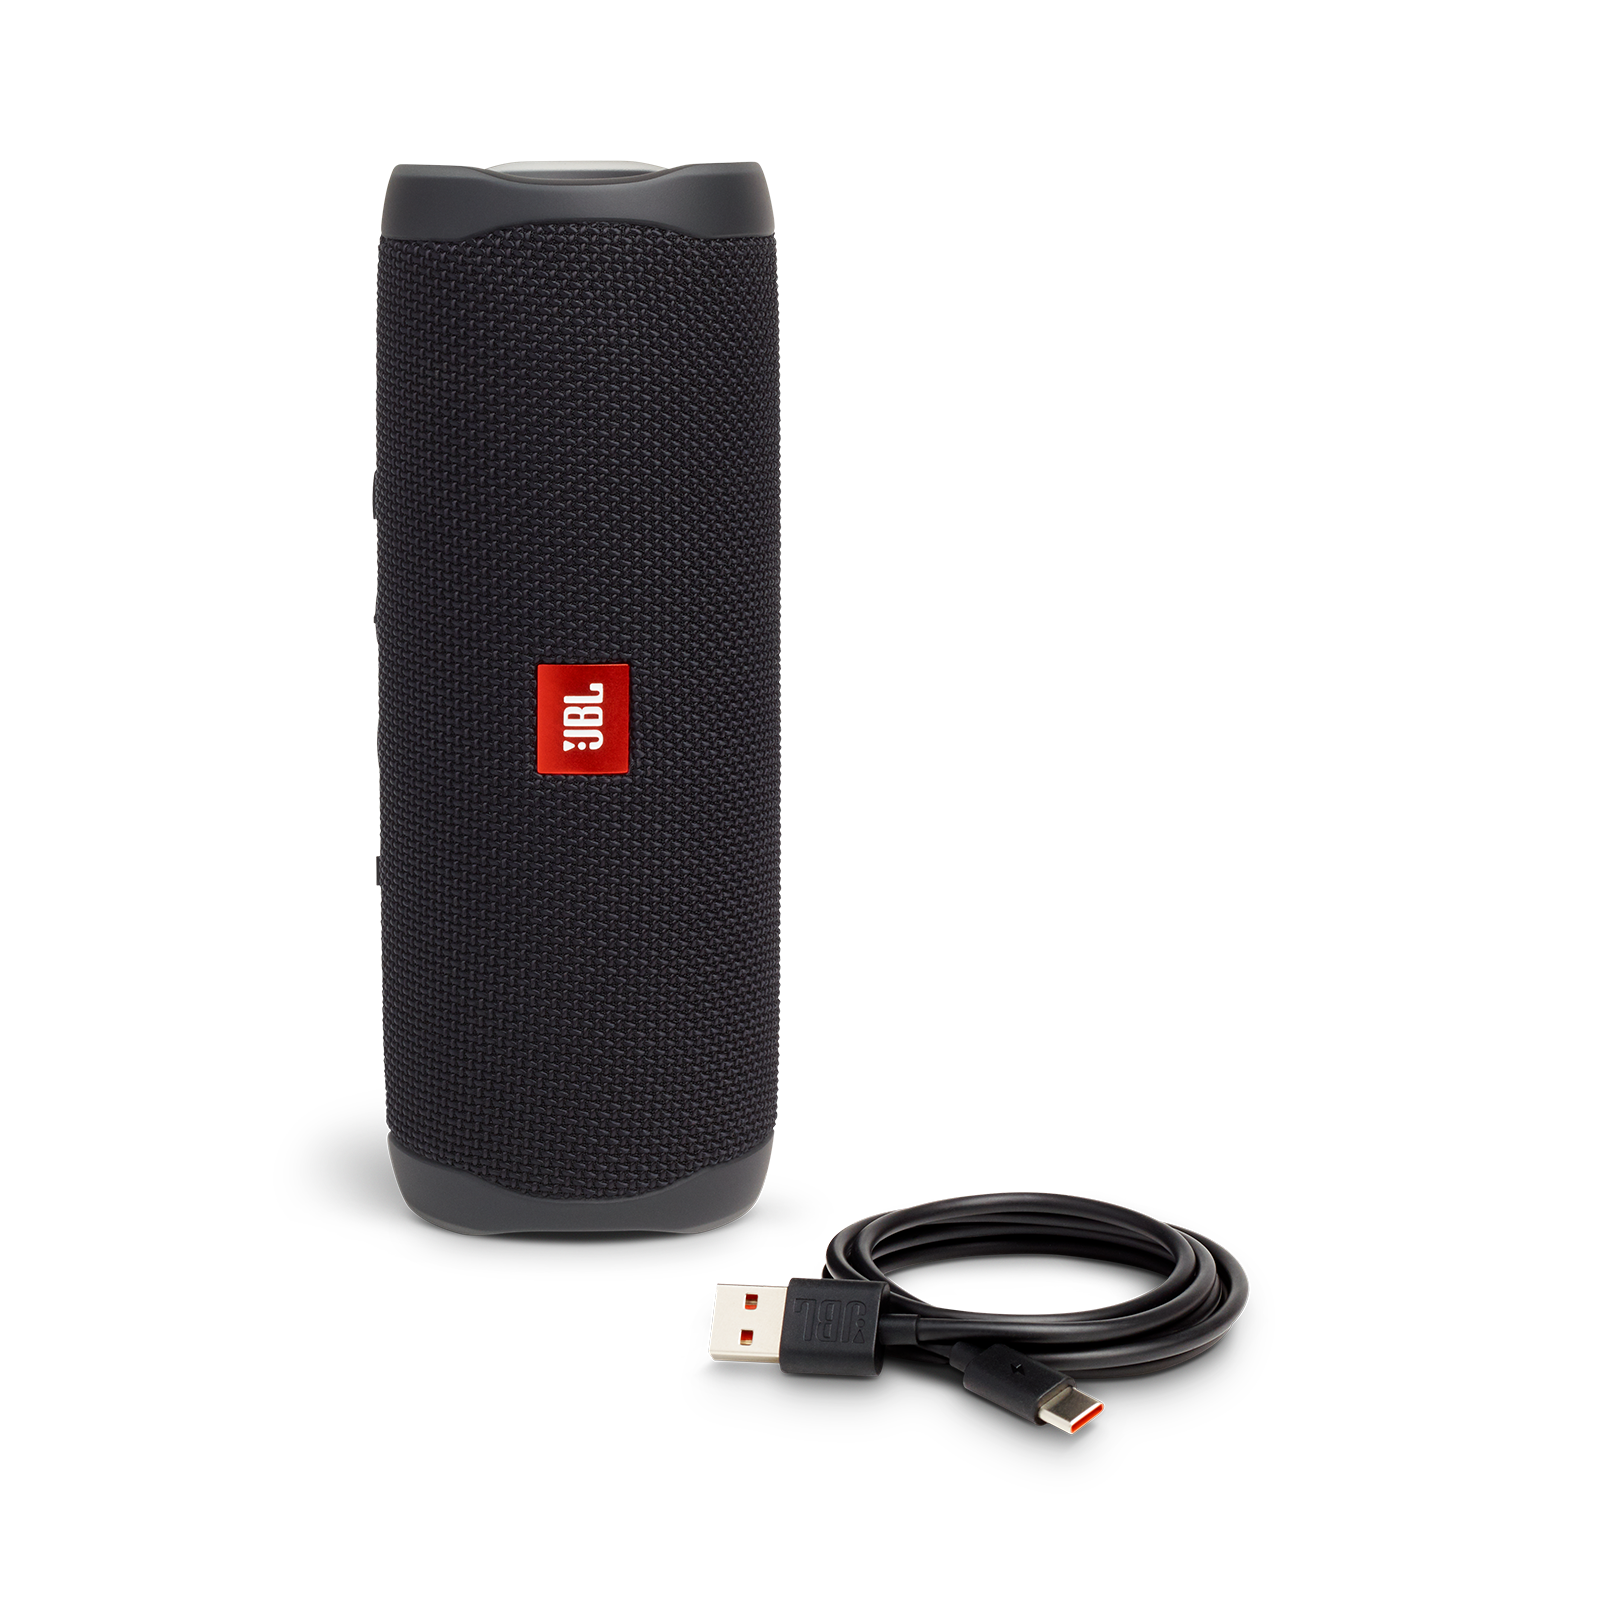 JBL FLIP 5 - Black Matte - Portable Waterproof Speaker - Detailshot 1